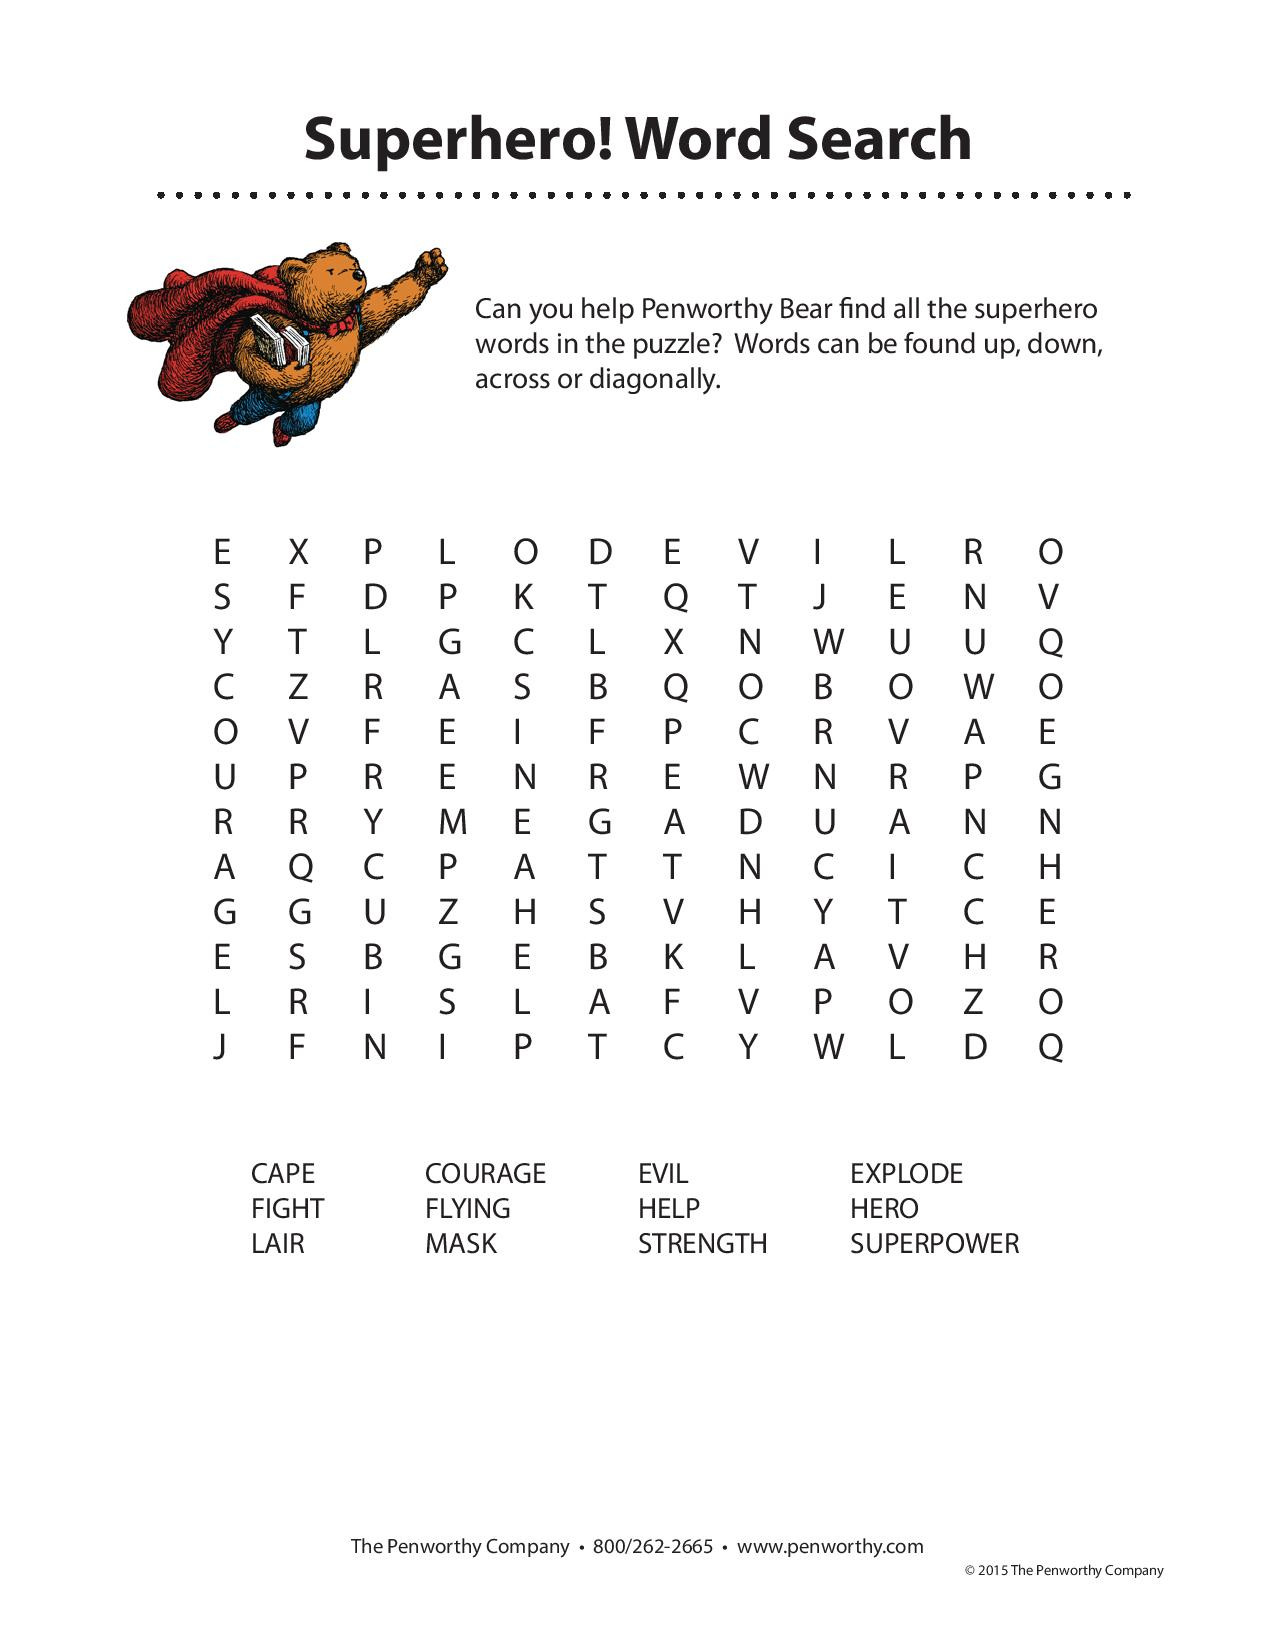 Superhero Word Search Printable 10 Superheroes Word Search Printables for All